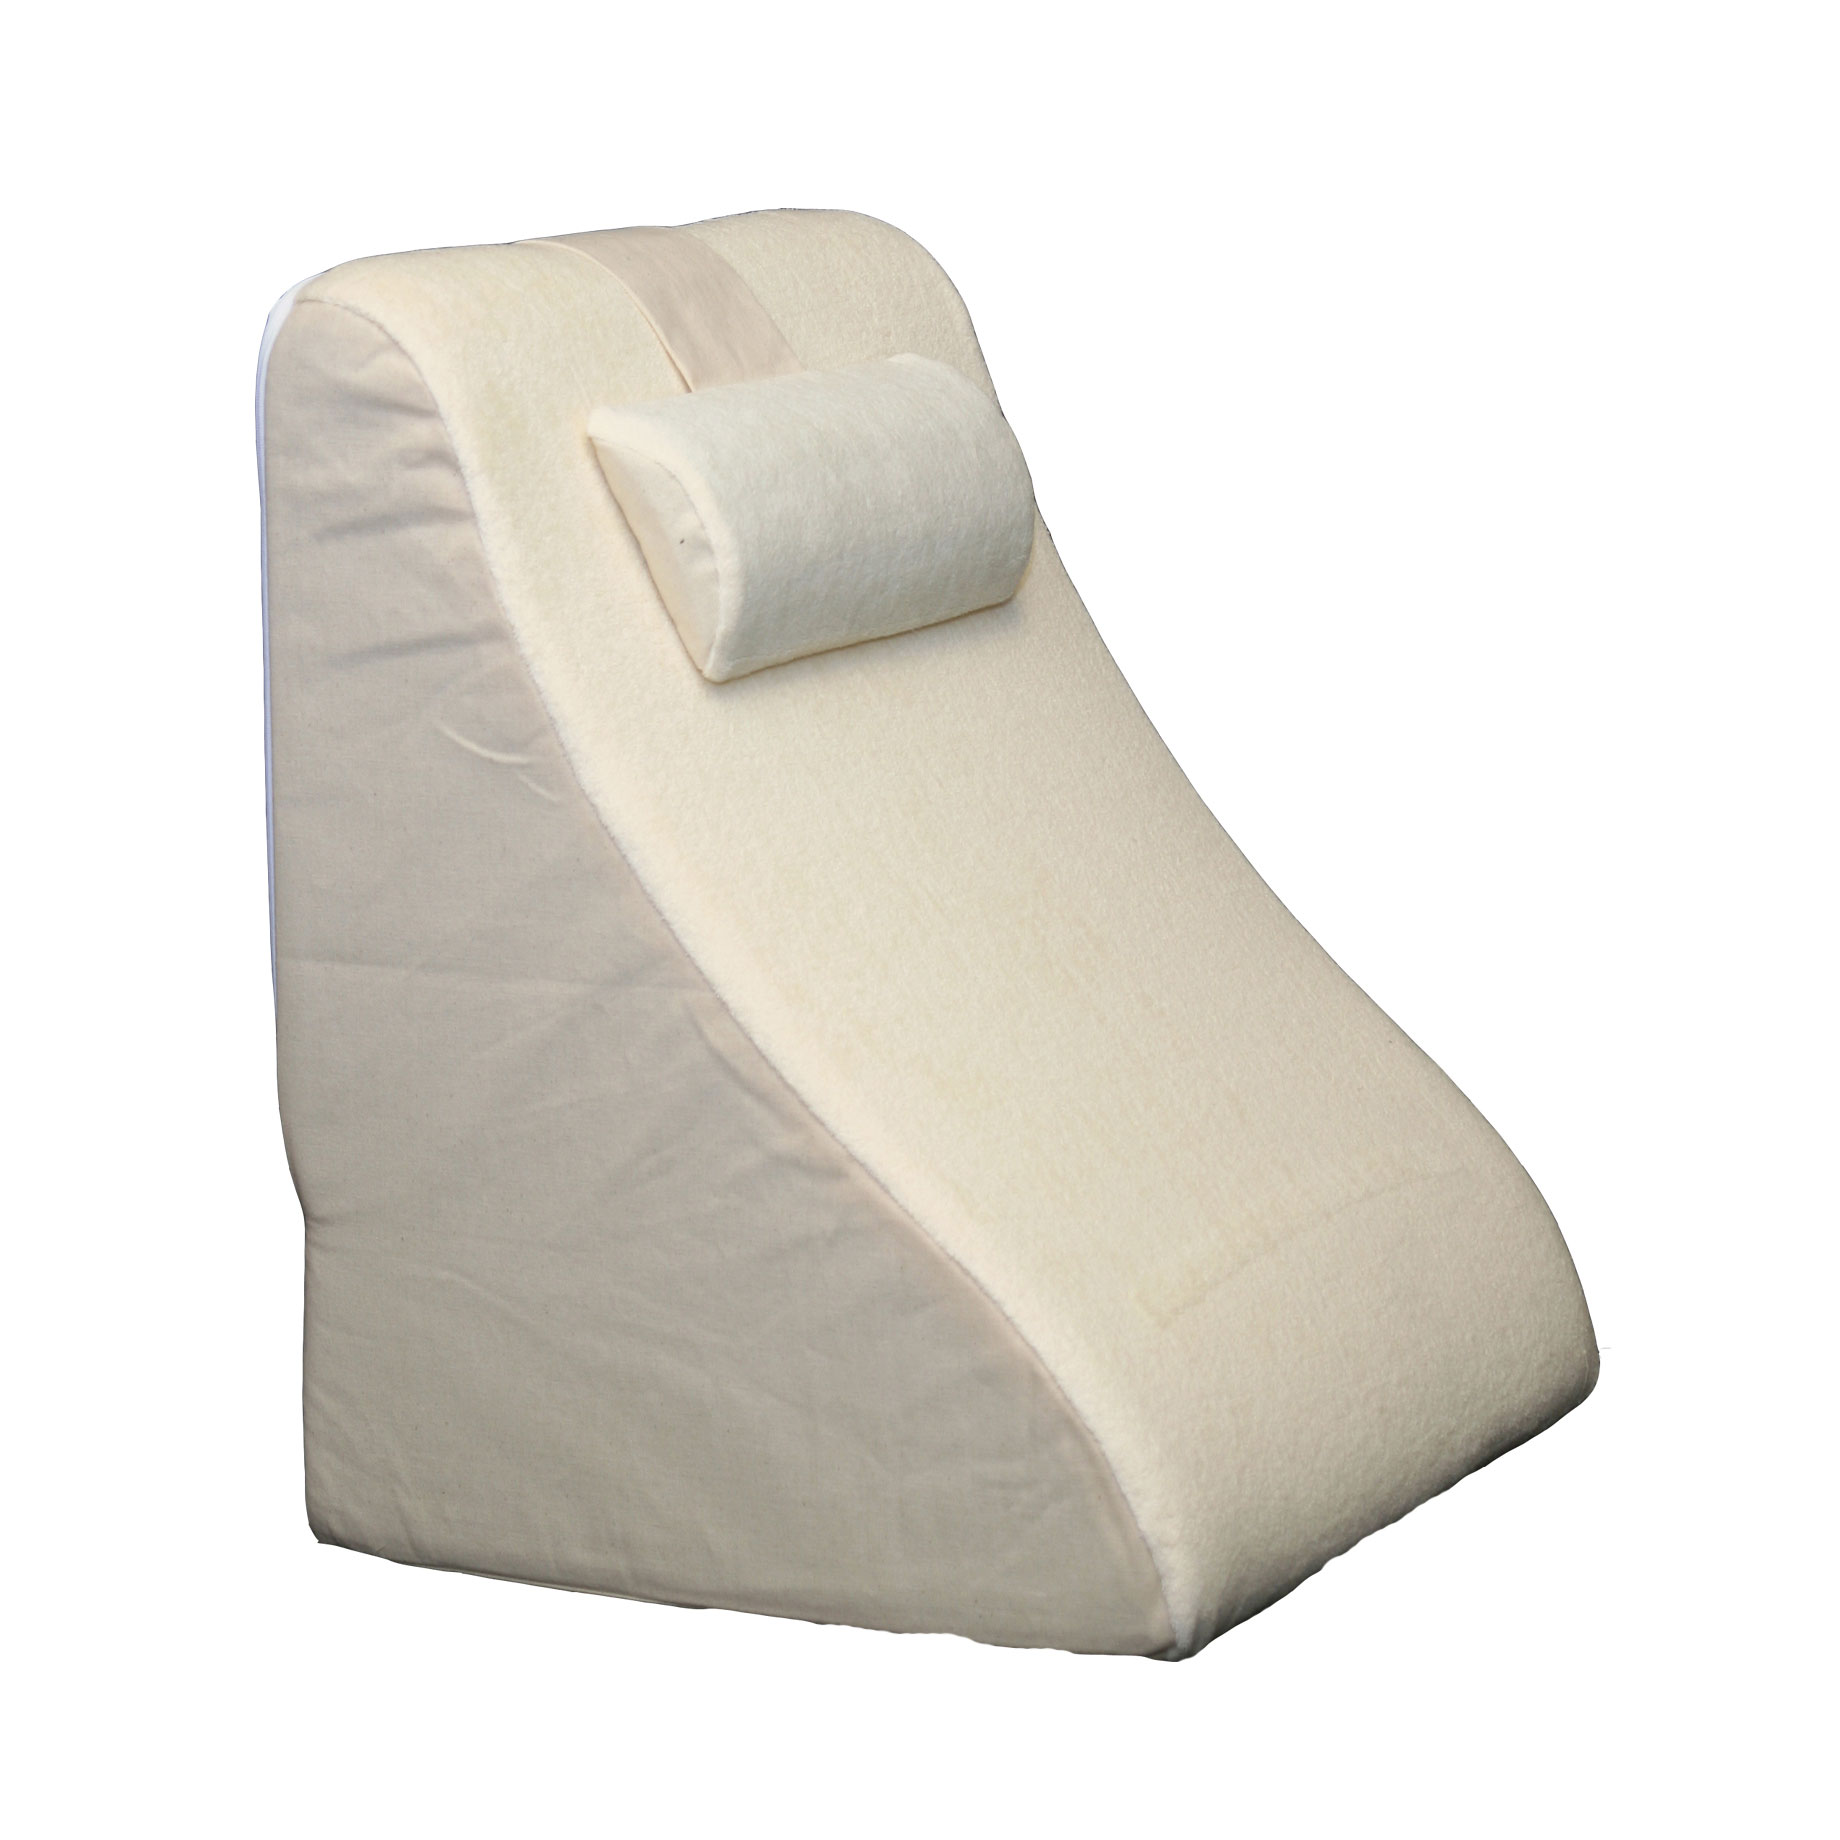 Bed Wedge Pillow Uk